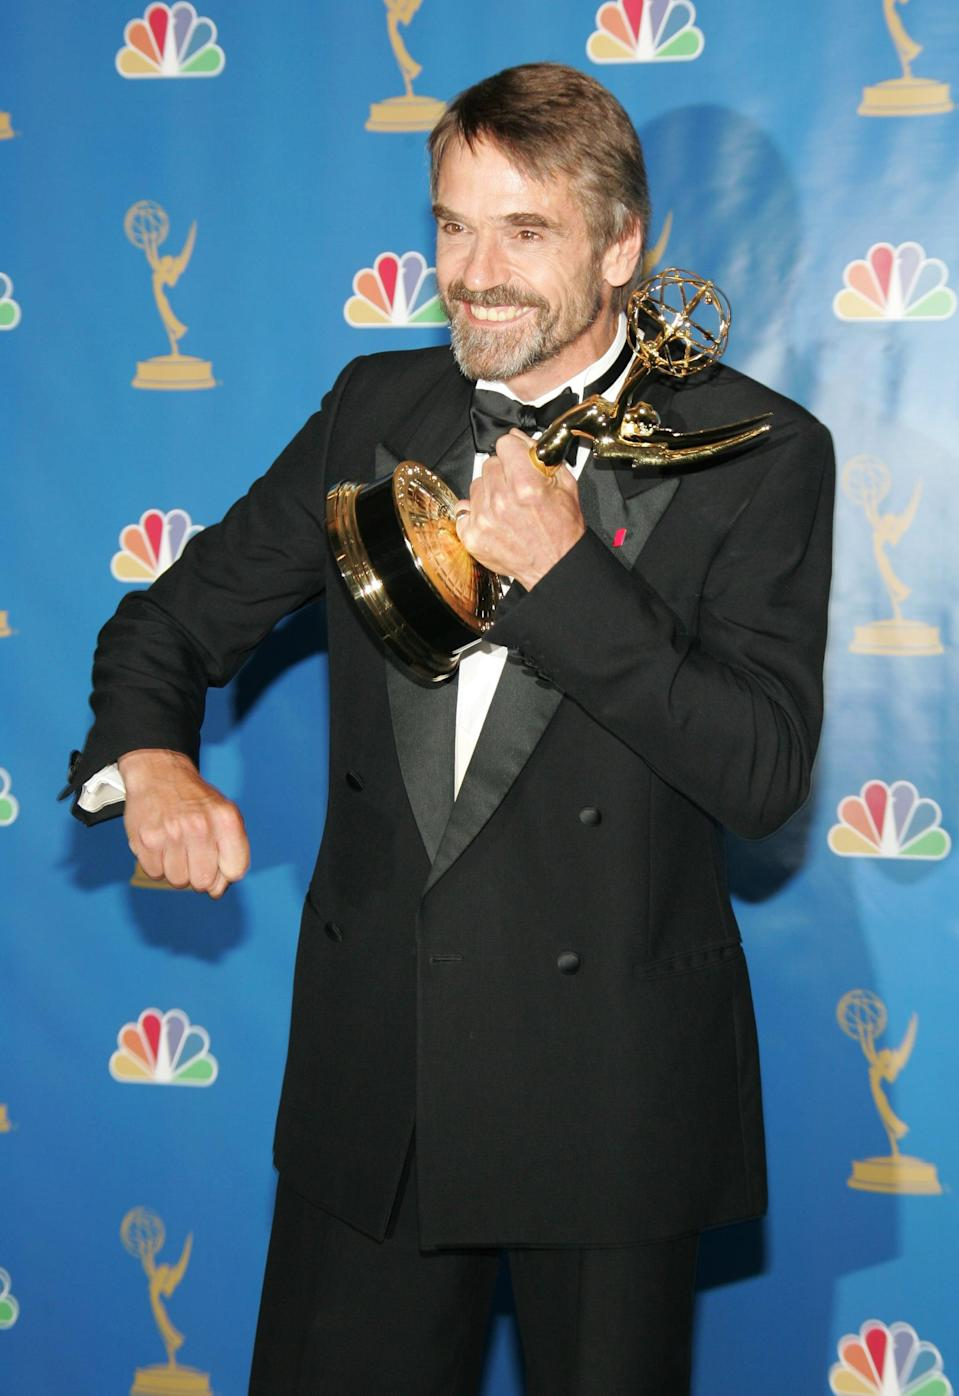 <ul> <li><strong>Has:</strong> An Oscar for <strong>Reversal of Fortune</strong>, two Emmys for <strong>Elizabeth I</strong> and <strong>The Great War and Shaping of the 20th Century</strong>, and a Tony for <strong>The Real Thing</strong></li> <li><strong>Needs:</strong> A Grammy </li> </ul>